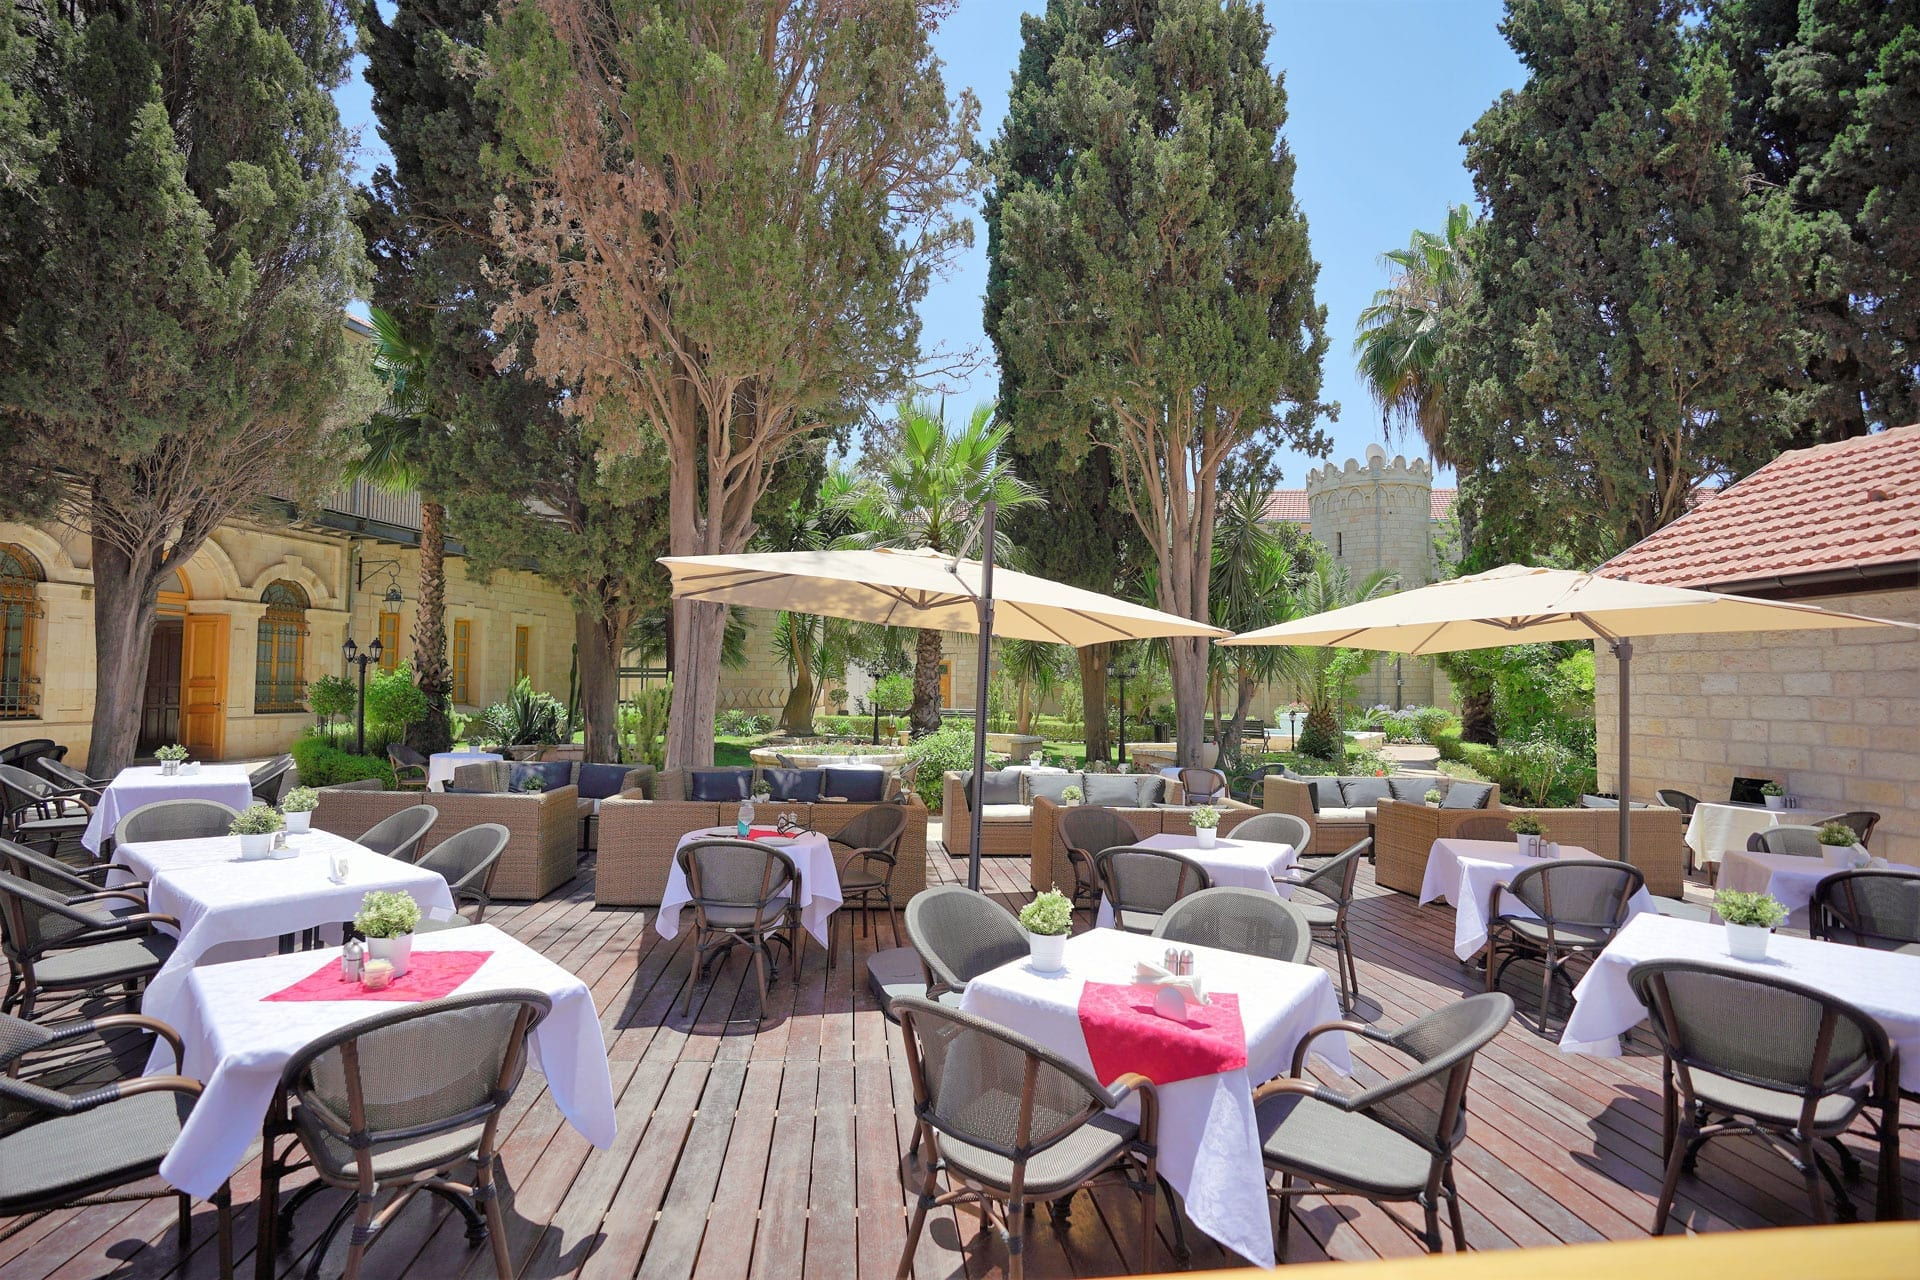 Sergei Palace Restaurant in Jerusalem